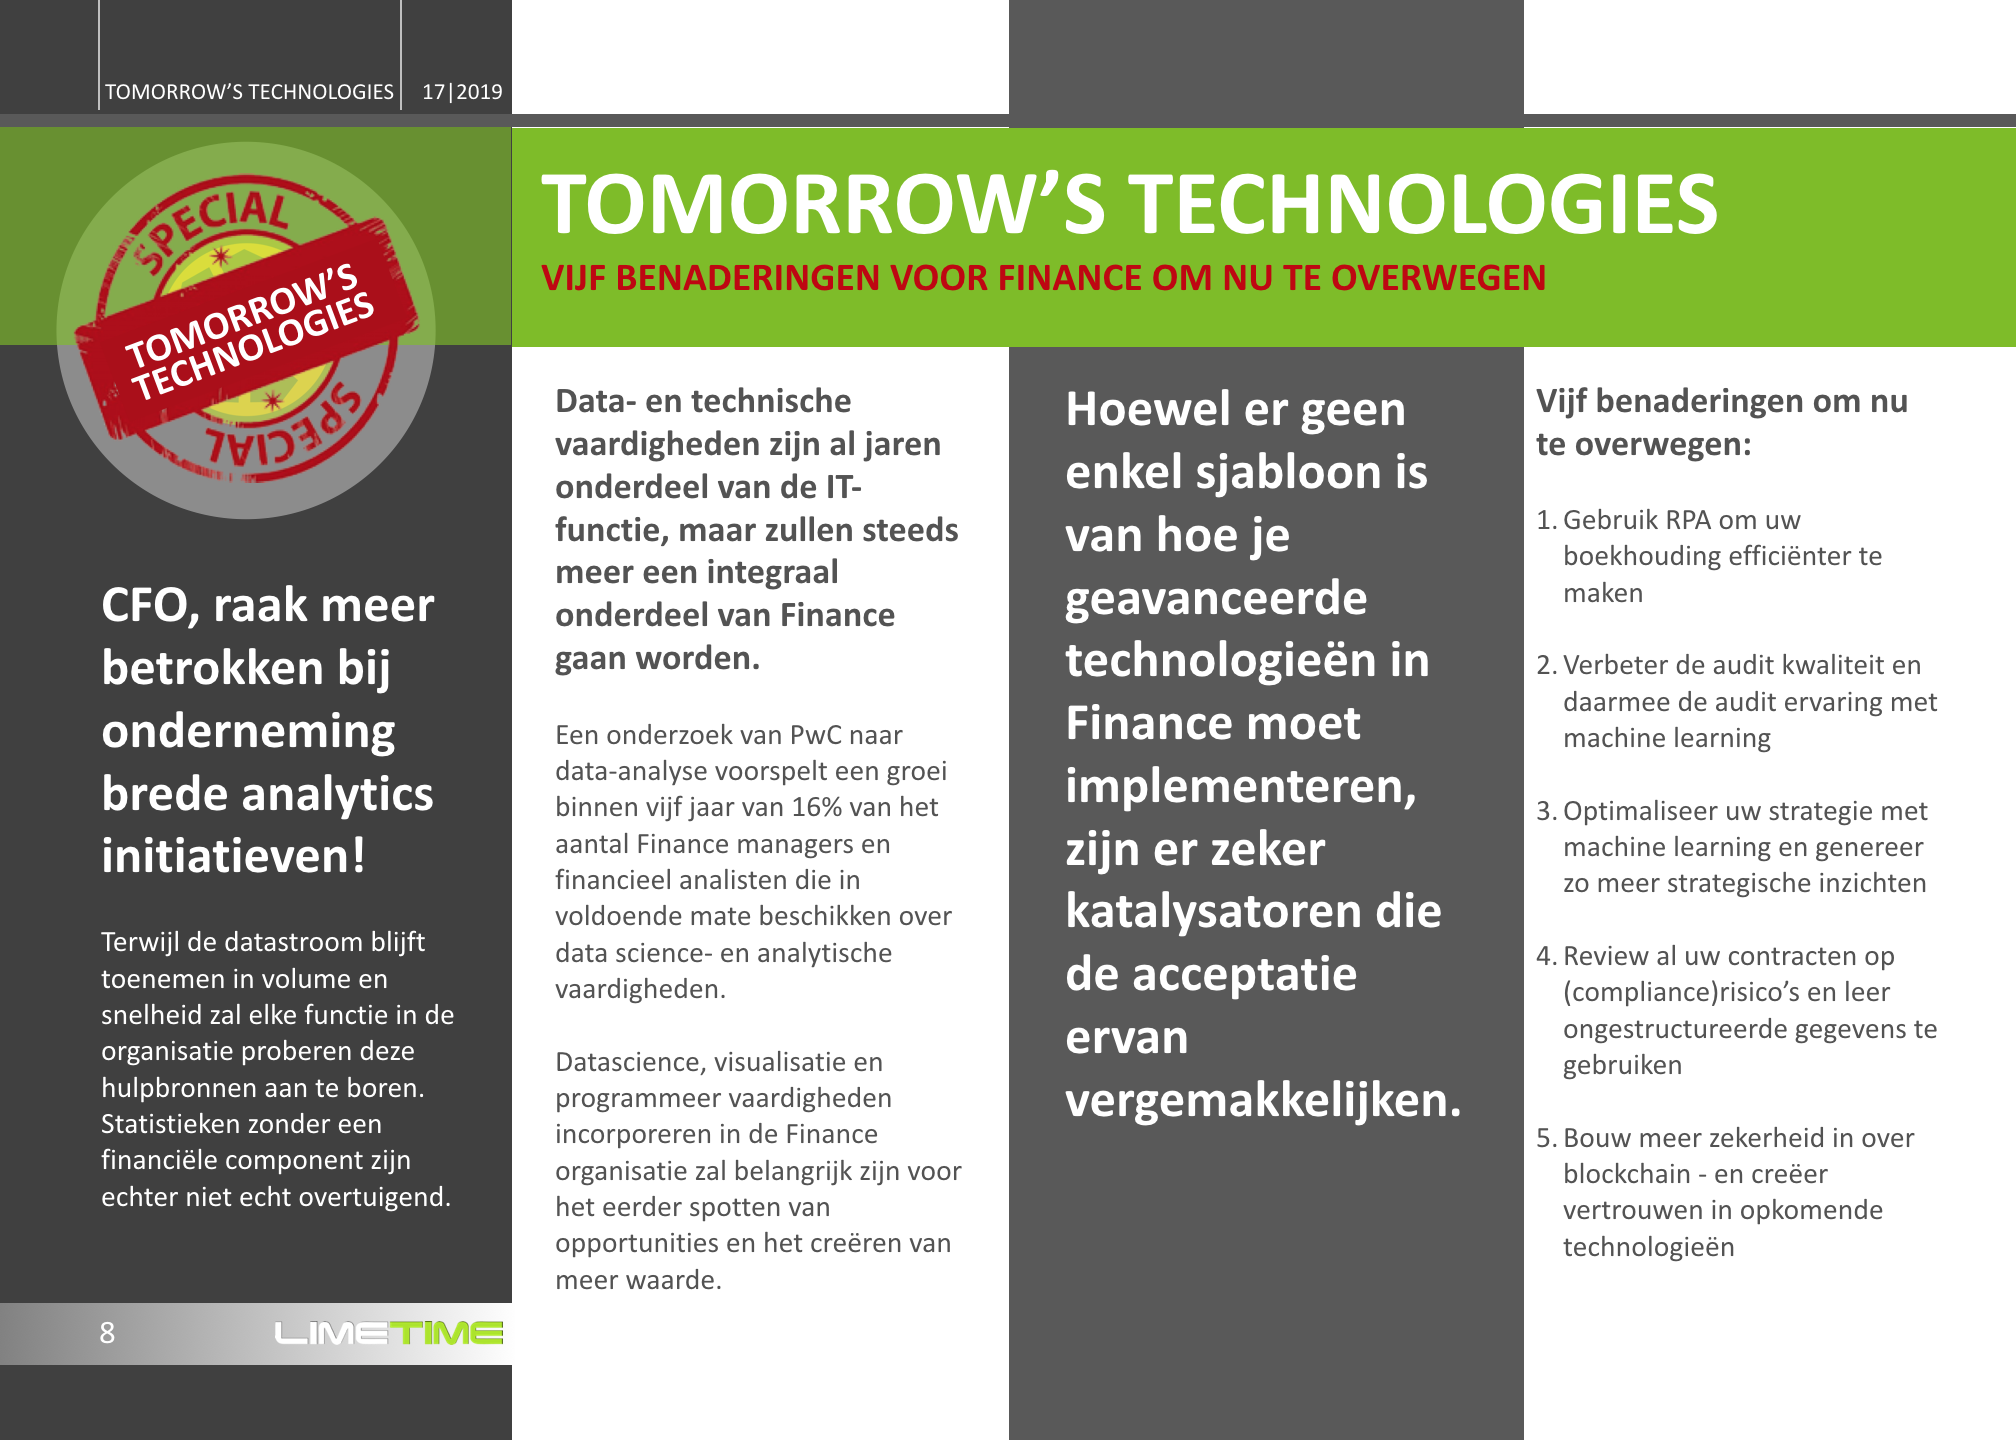 * Tomorrow's Technologies * SPECIAL * Vijf benaderingen voor Finance om nu te overwegen